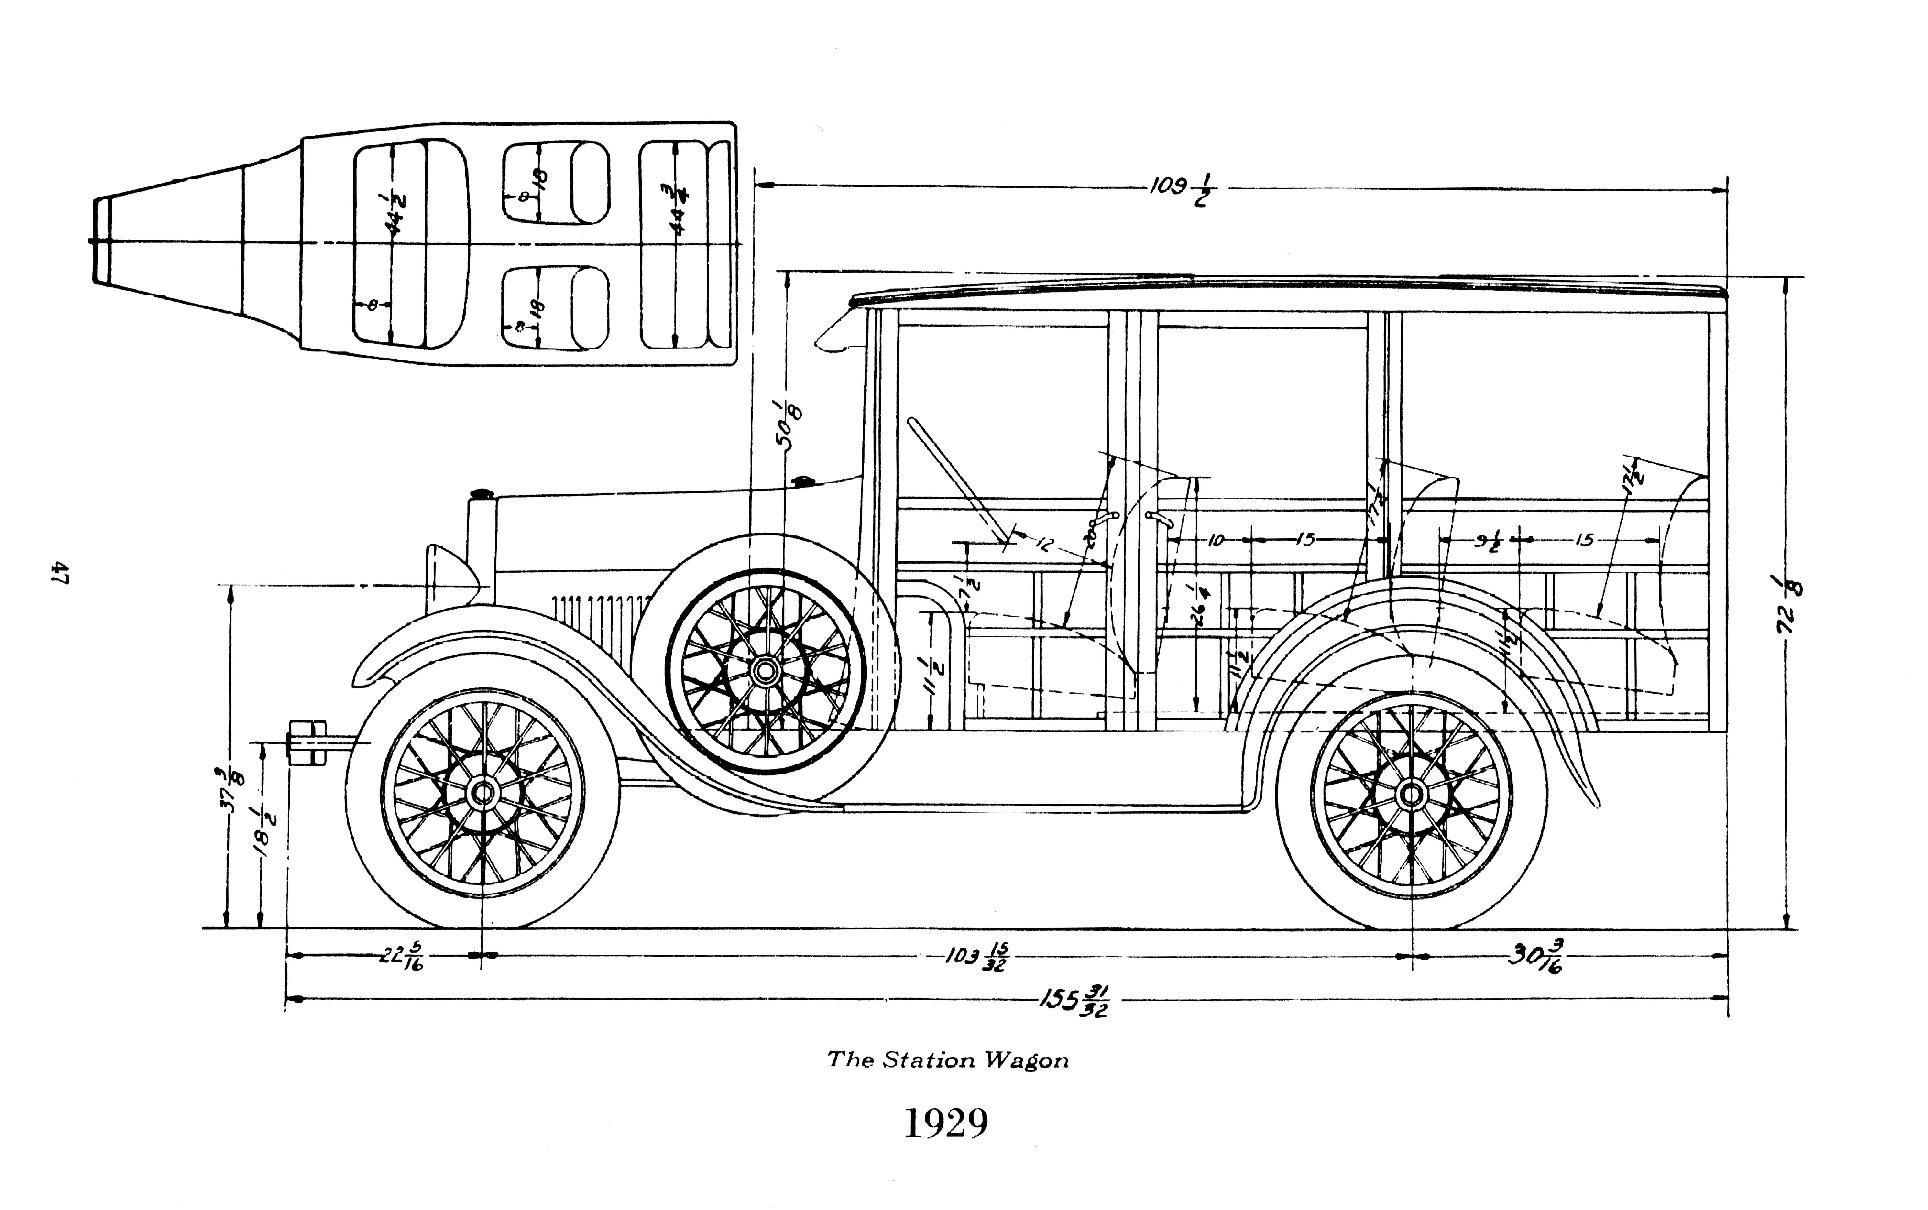 Ford Model A Station Wagon Image